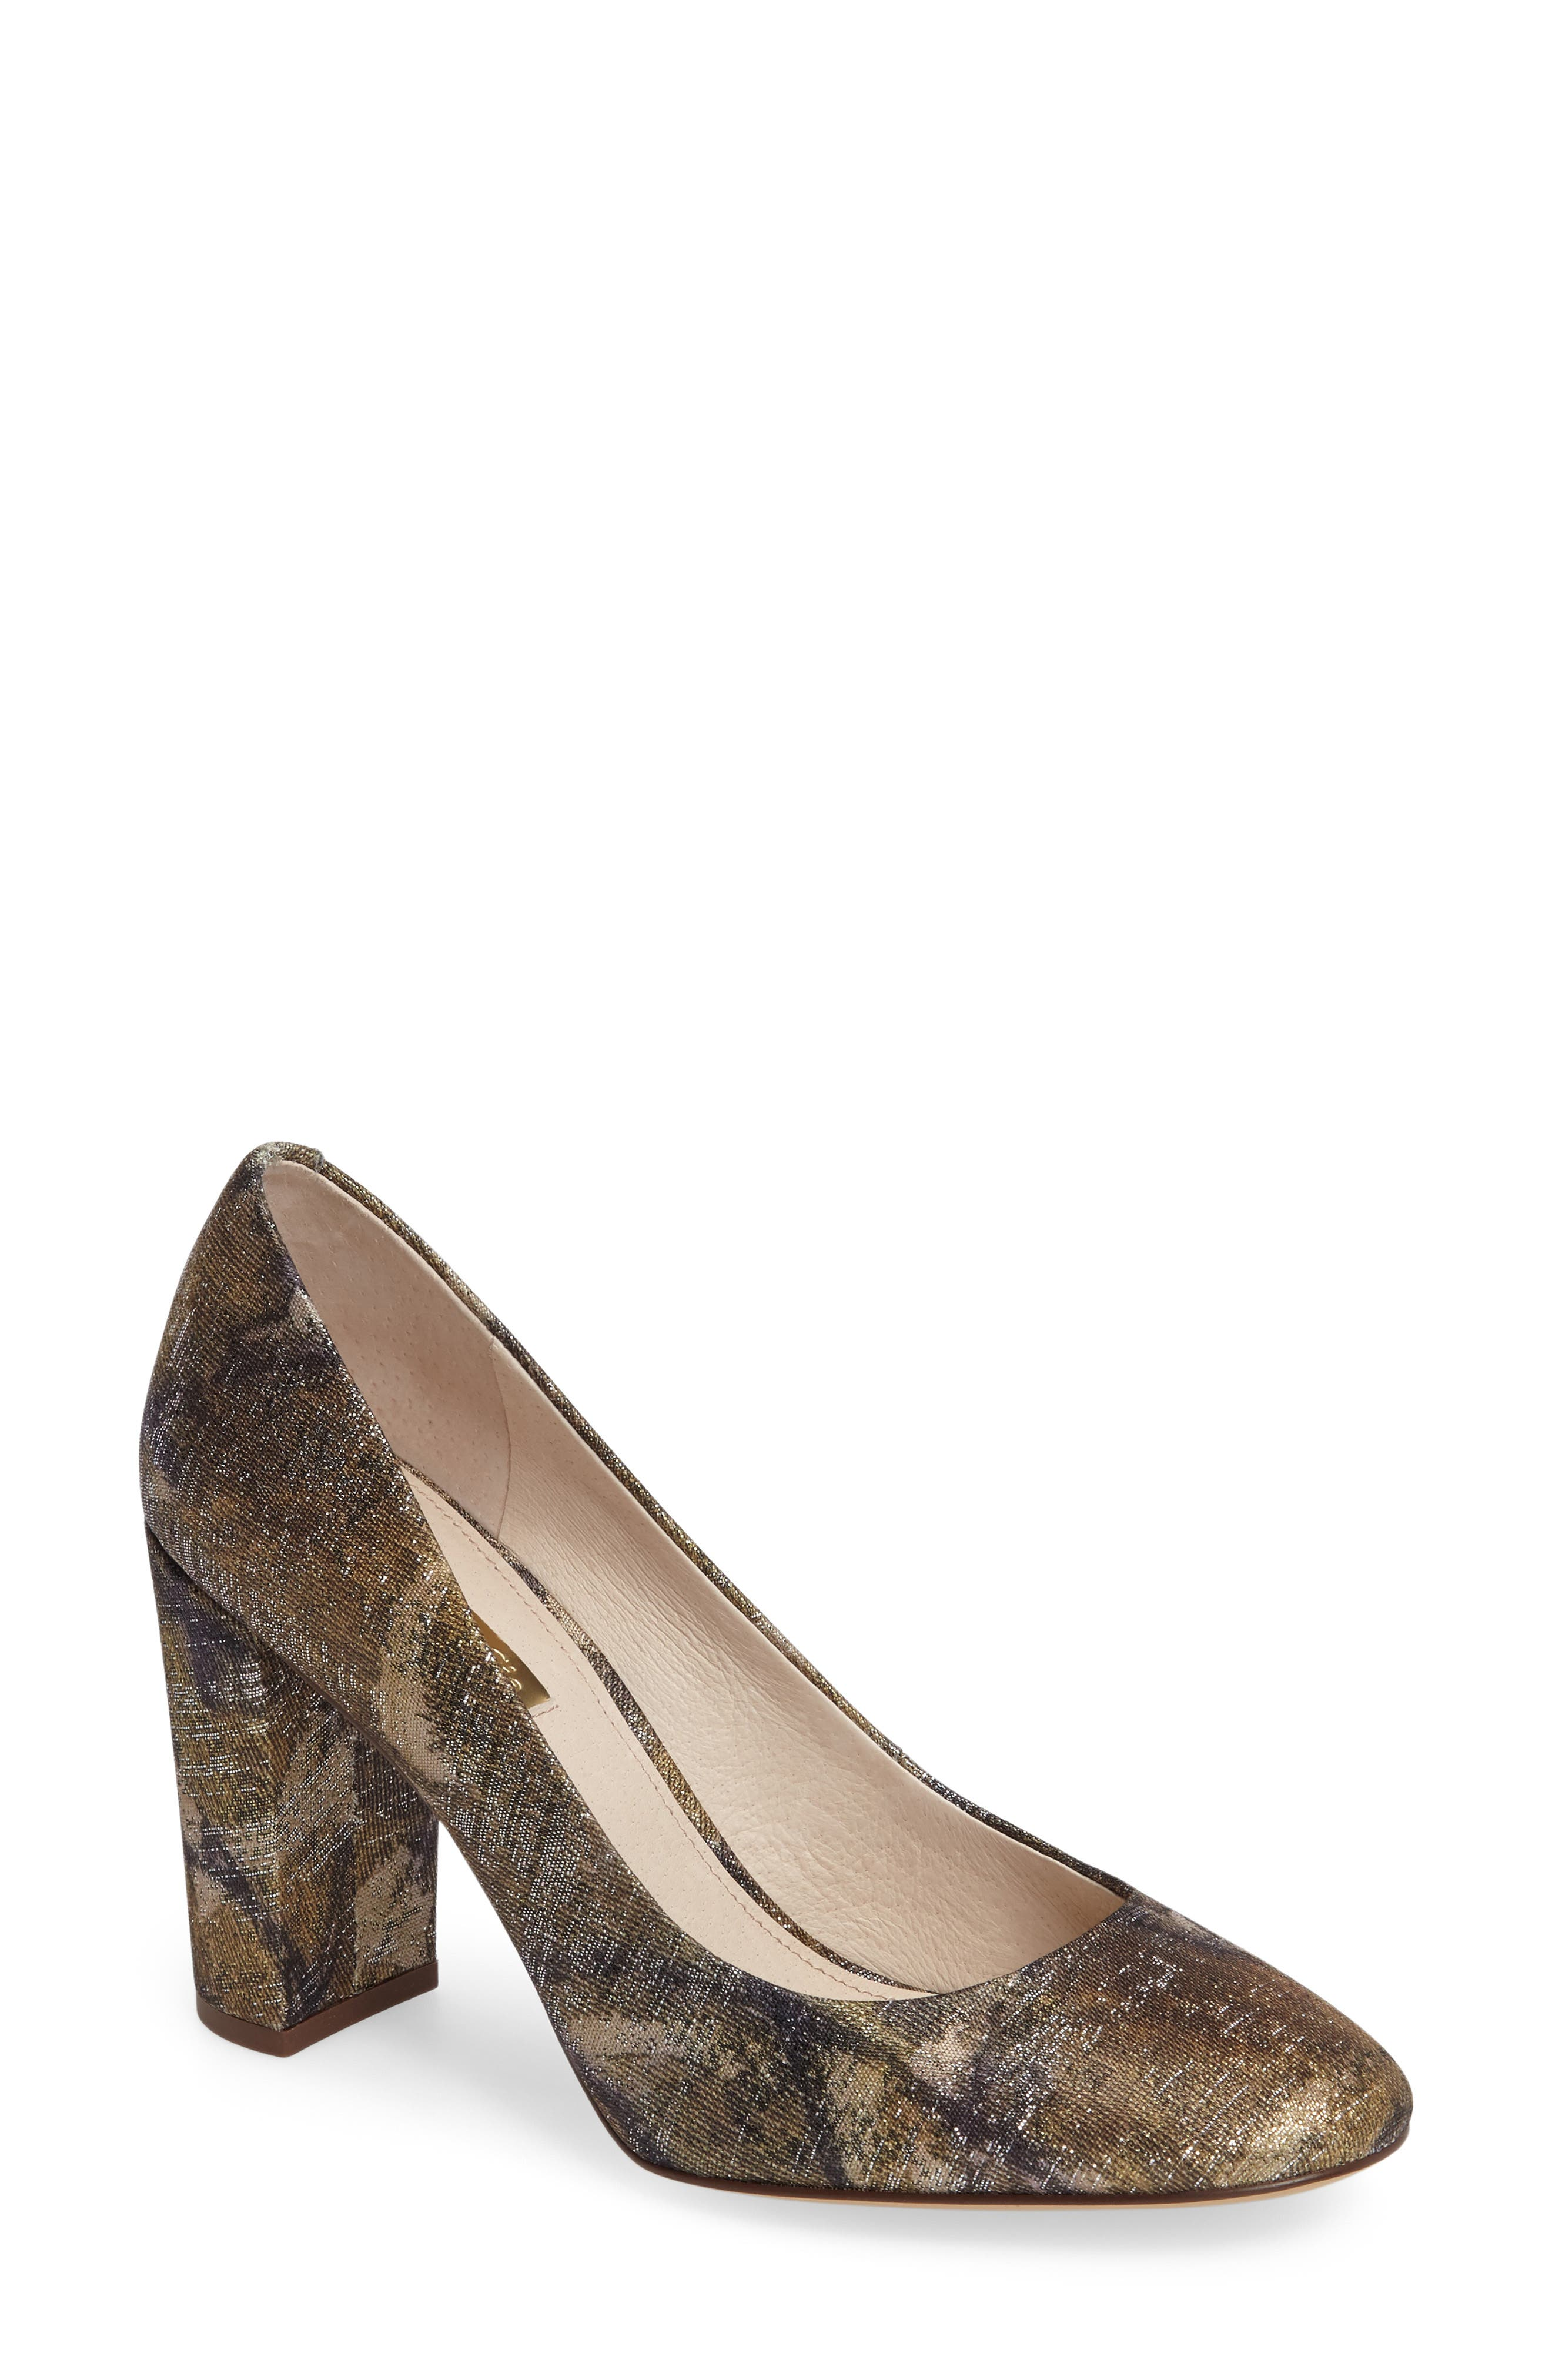 Louise et Cie Jianna Stacked Heel Pump (Women)